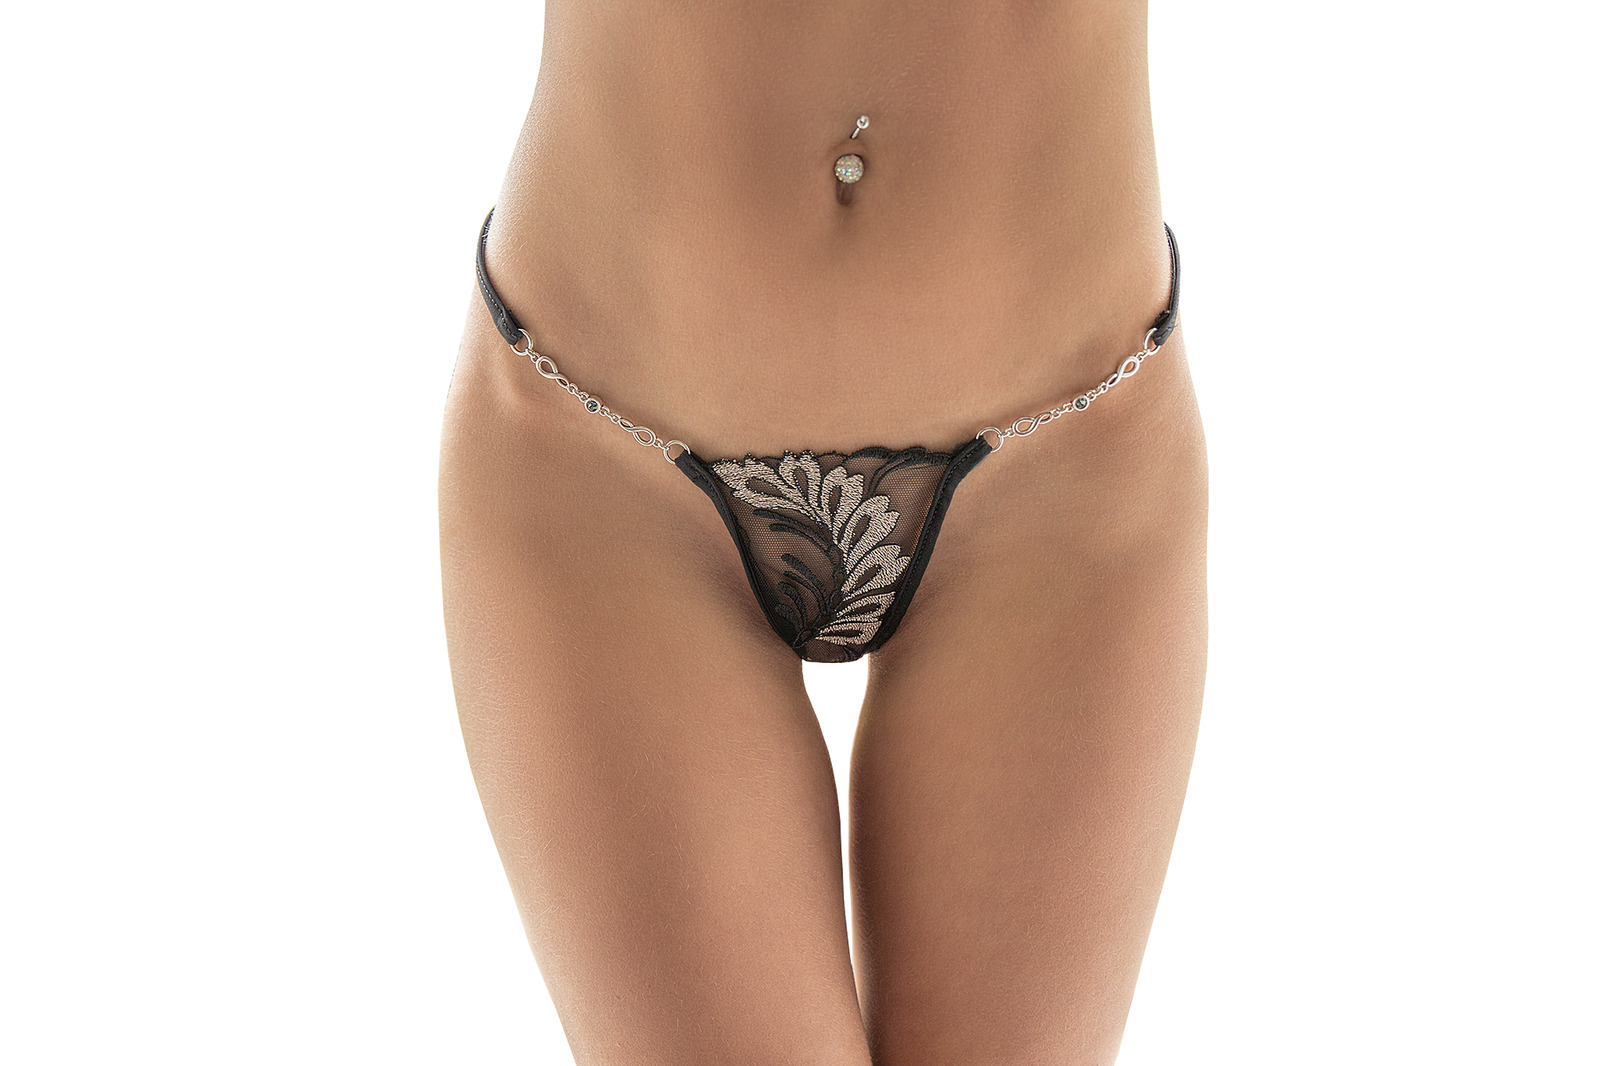 LUCKY CHEEKS Luxury String SILVER MOON